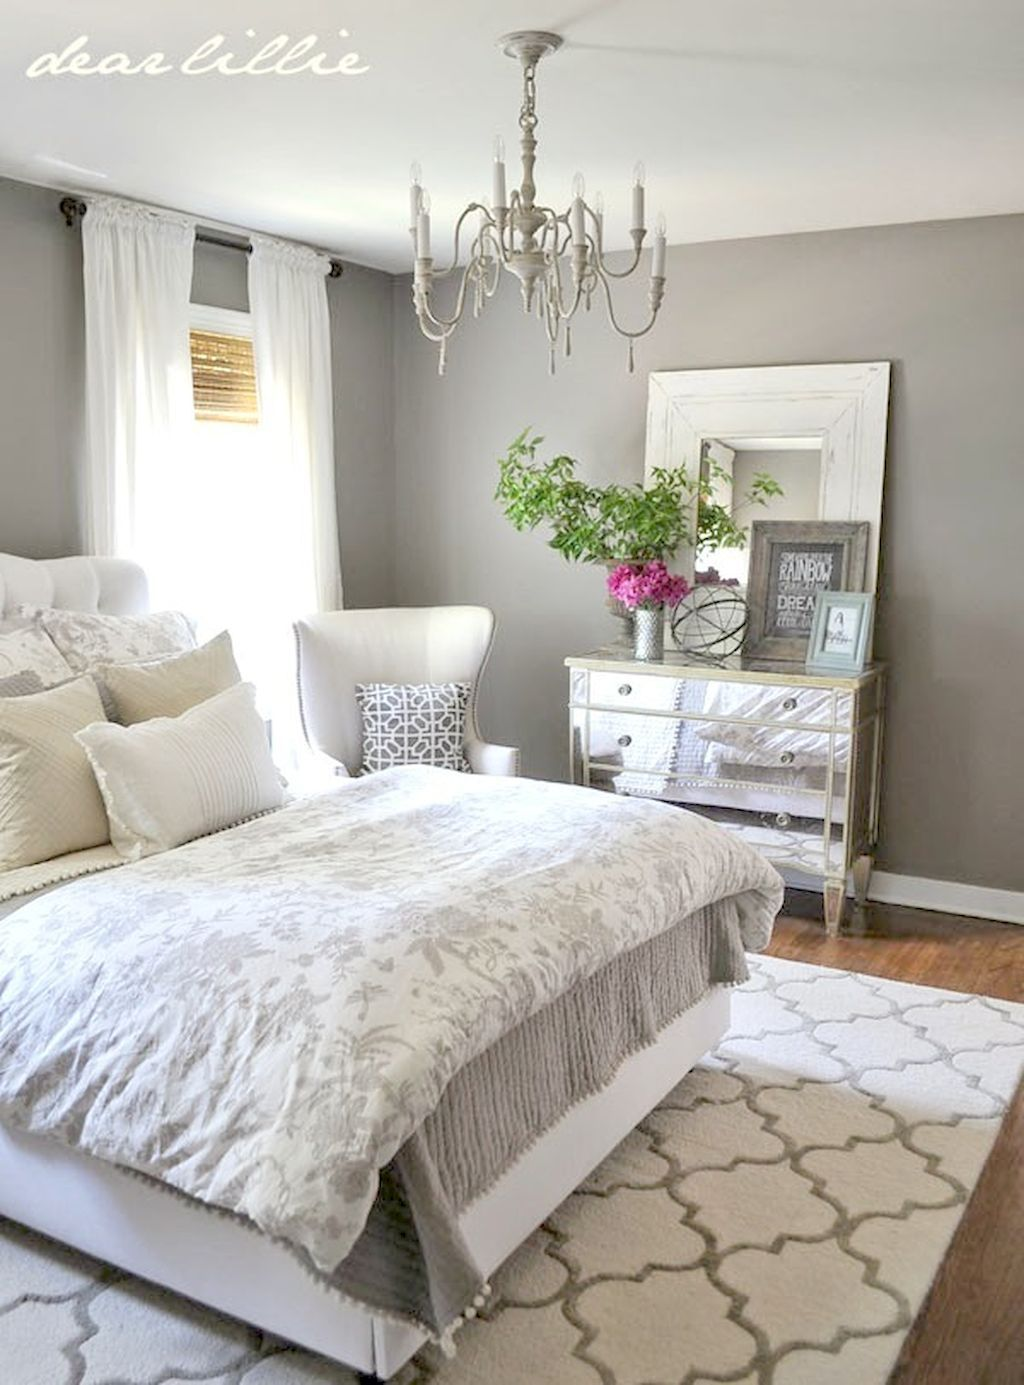 Bedroom Design Ideas On A Budget Impressive 80 Cozy Small Bedroom Remodel Ideas On A Budget  Cozy Small 2018